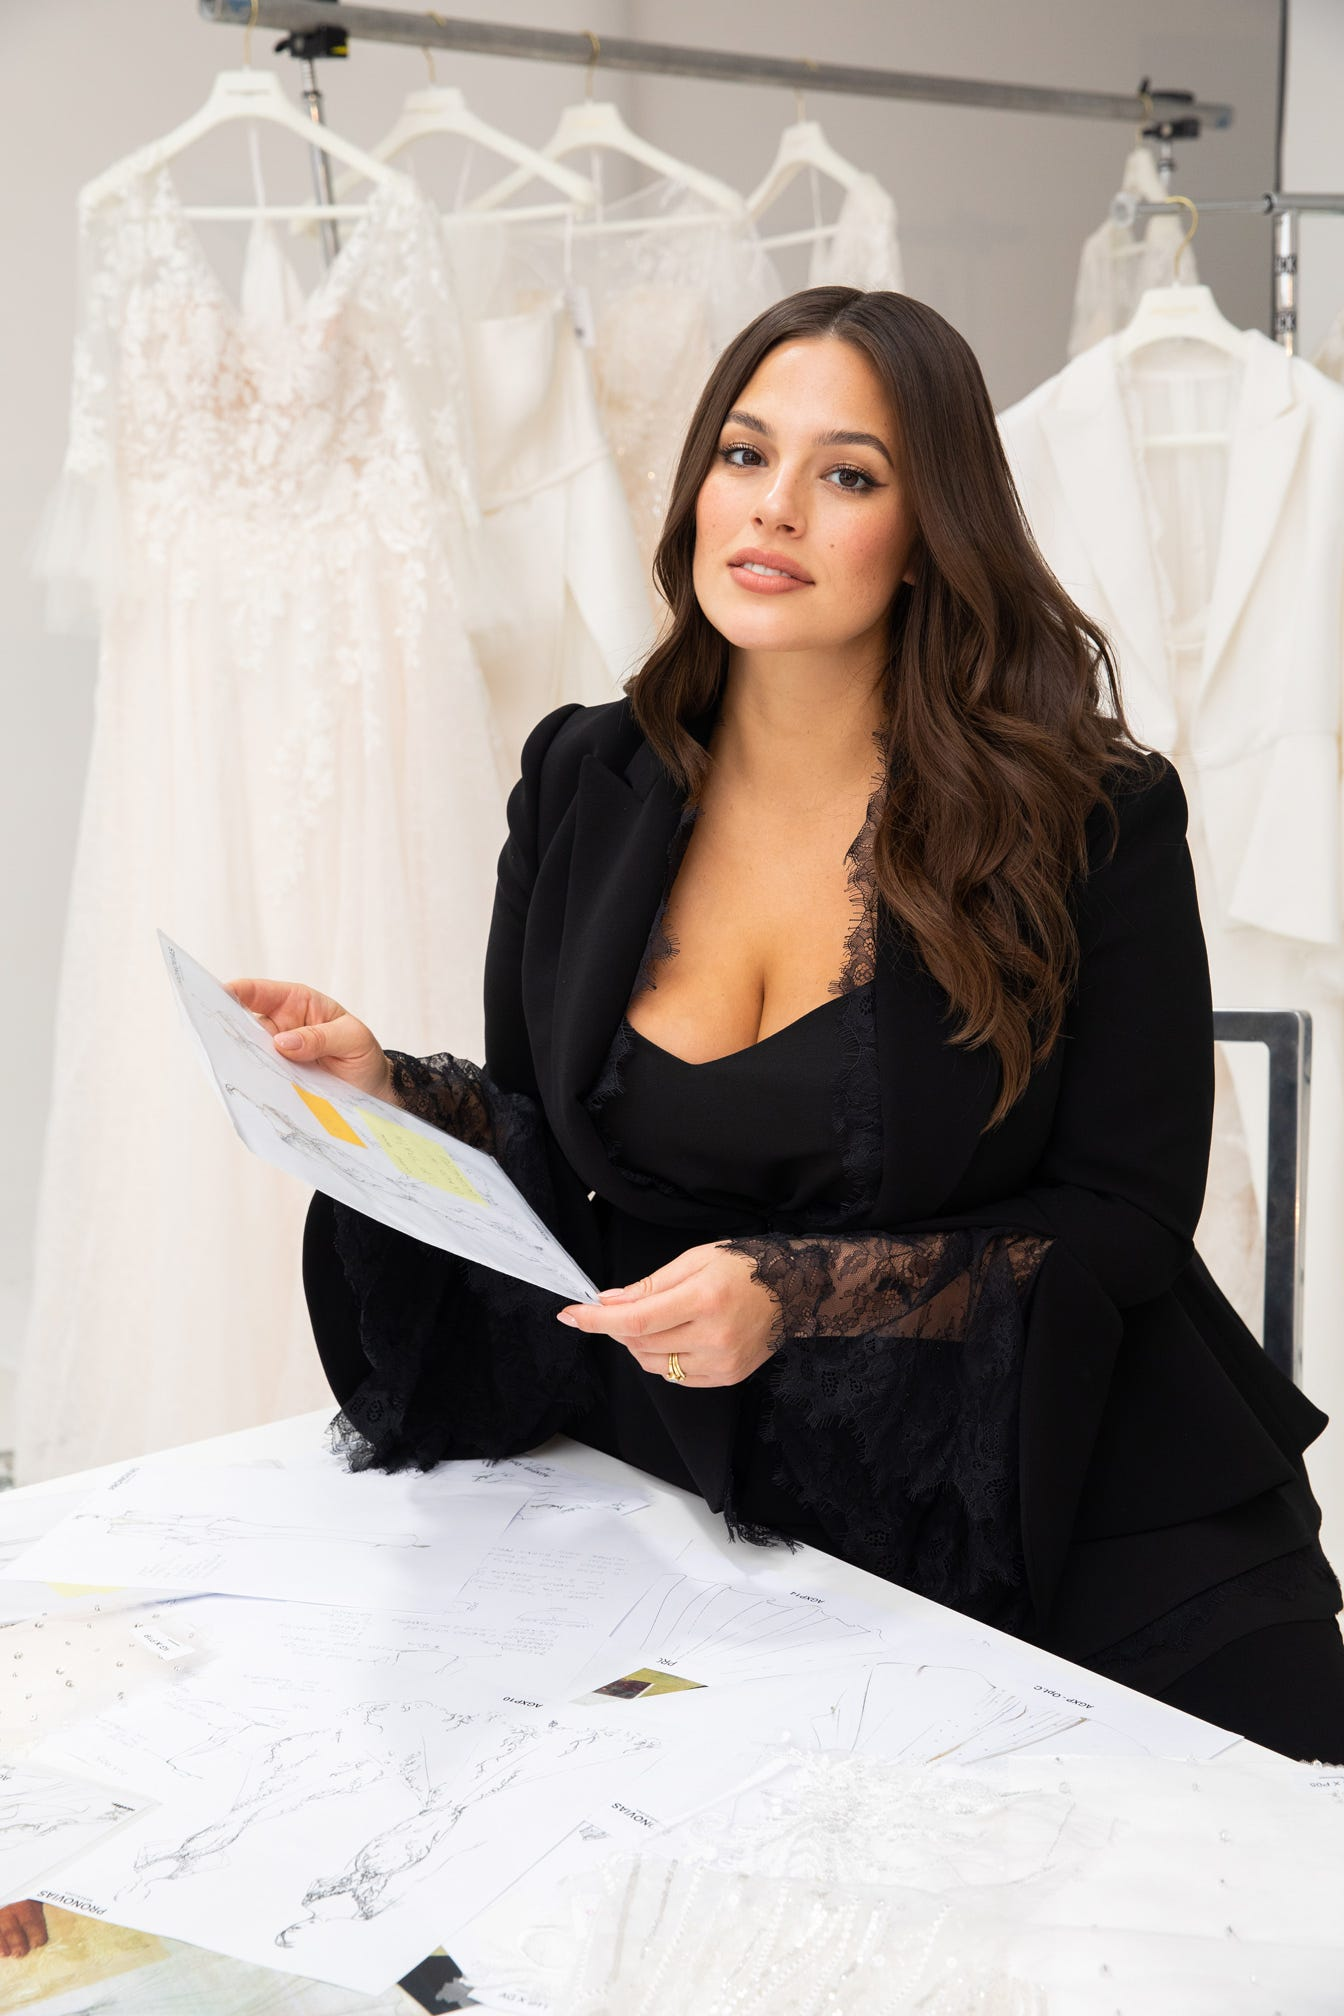 Ashley Graham by Pronovias. Desktop Image